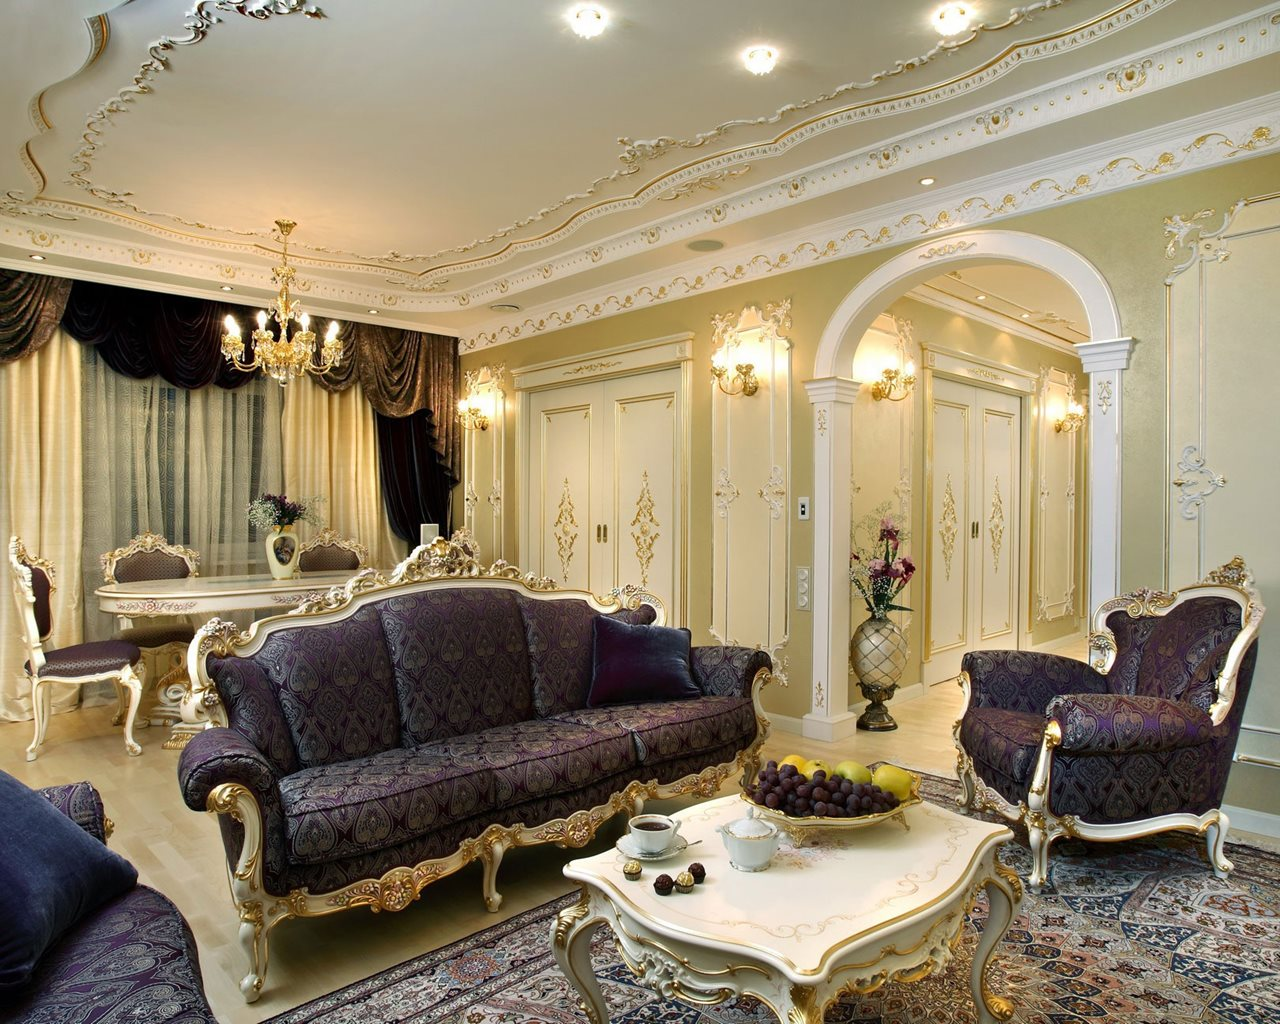 Baroque style interior design ideas for Interior desings